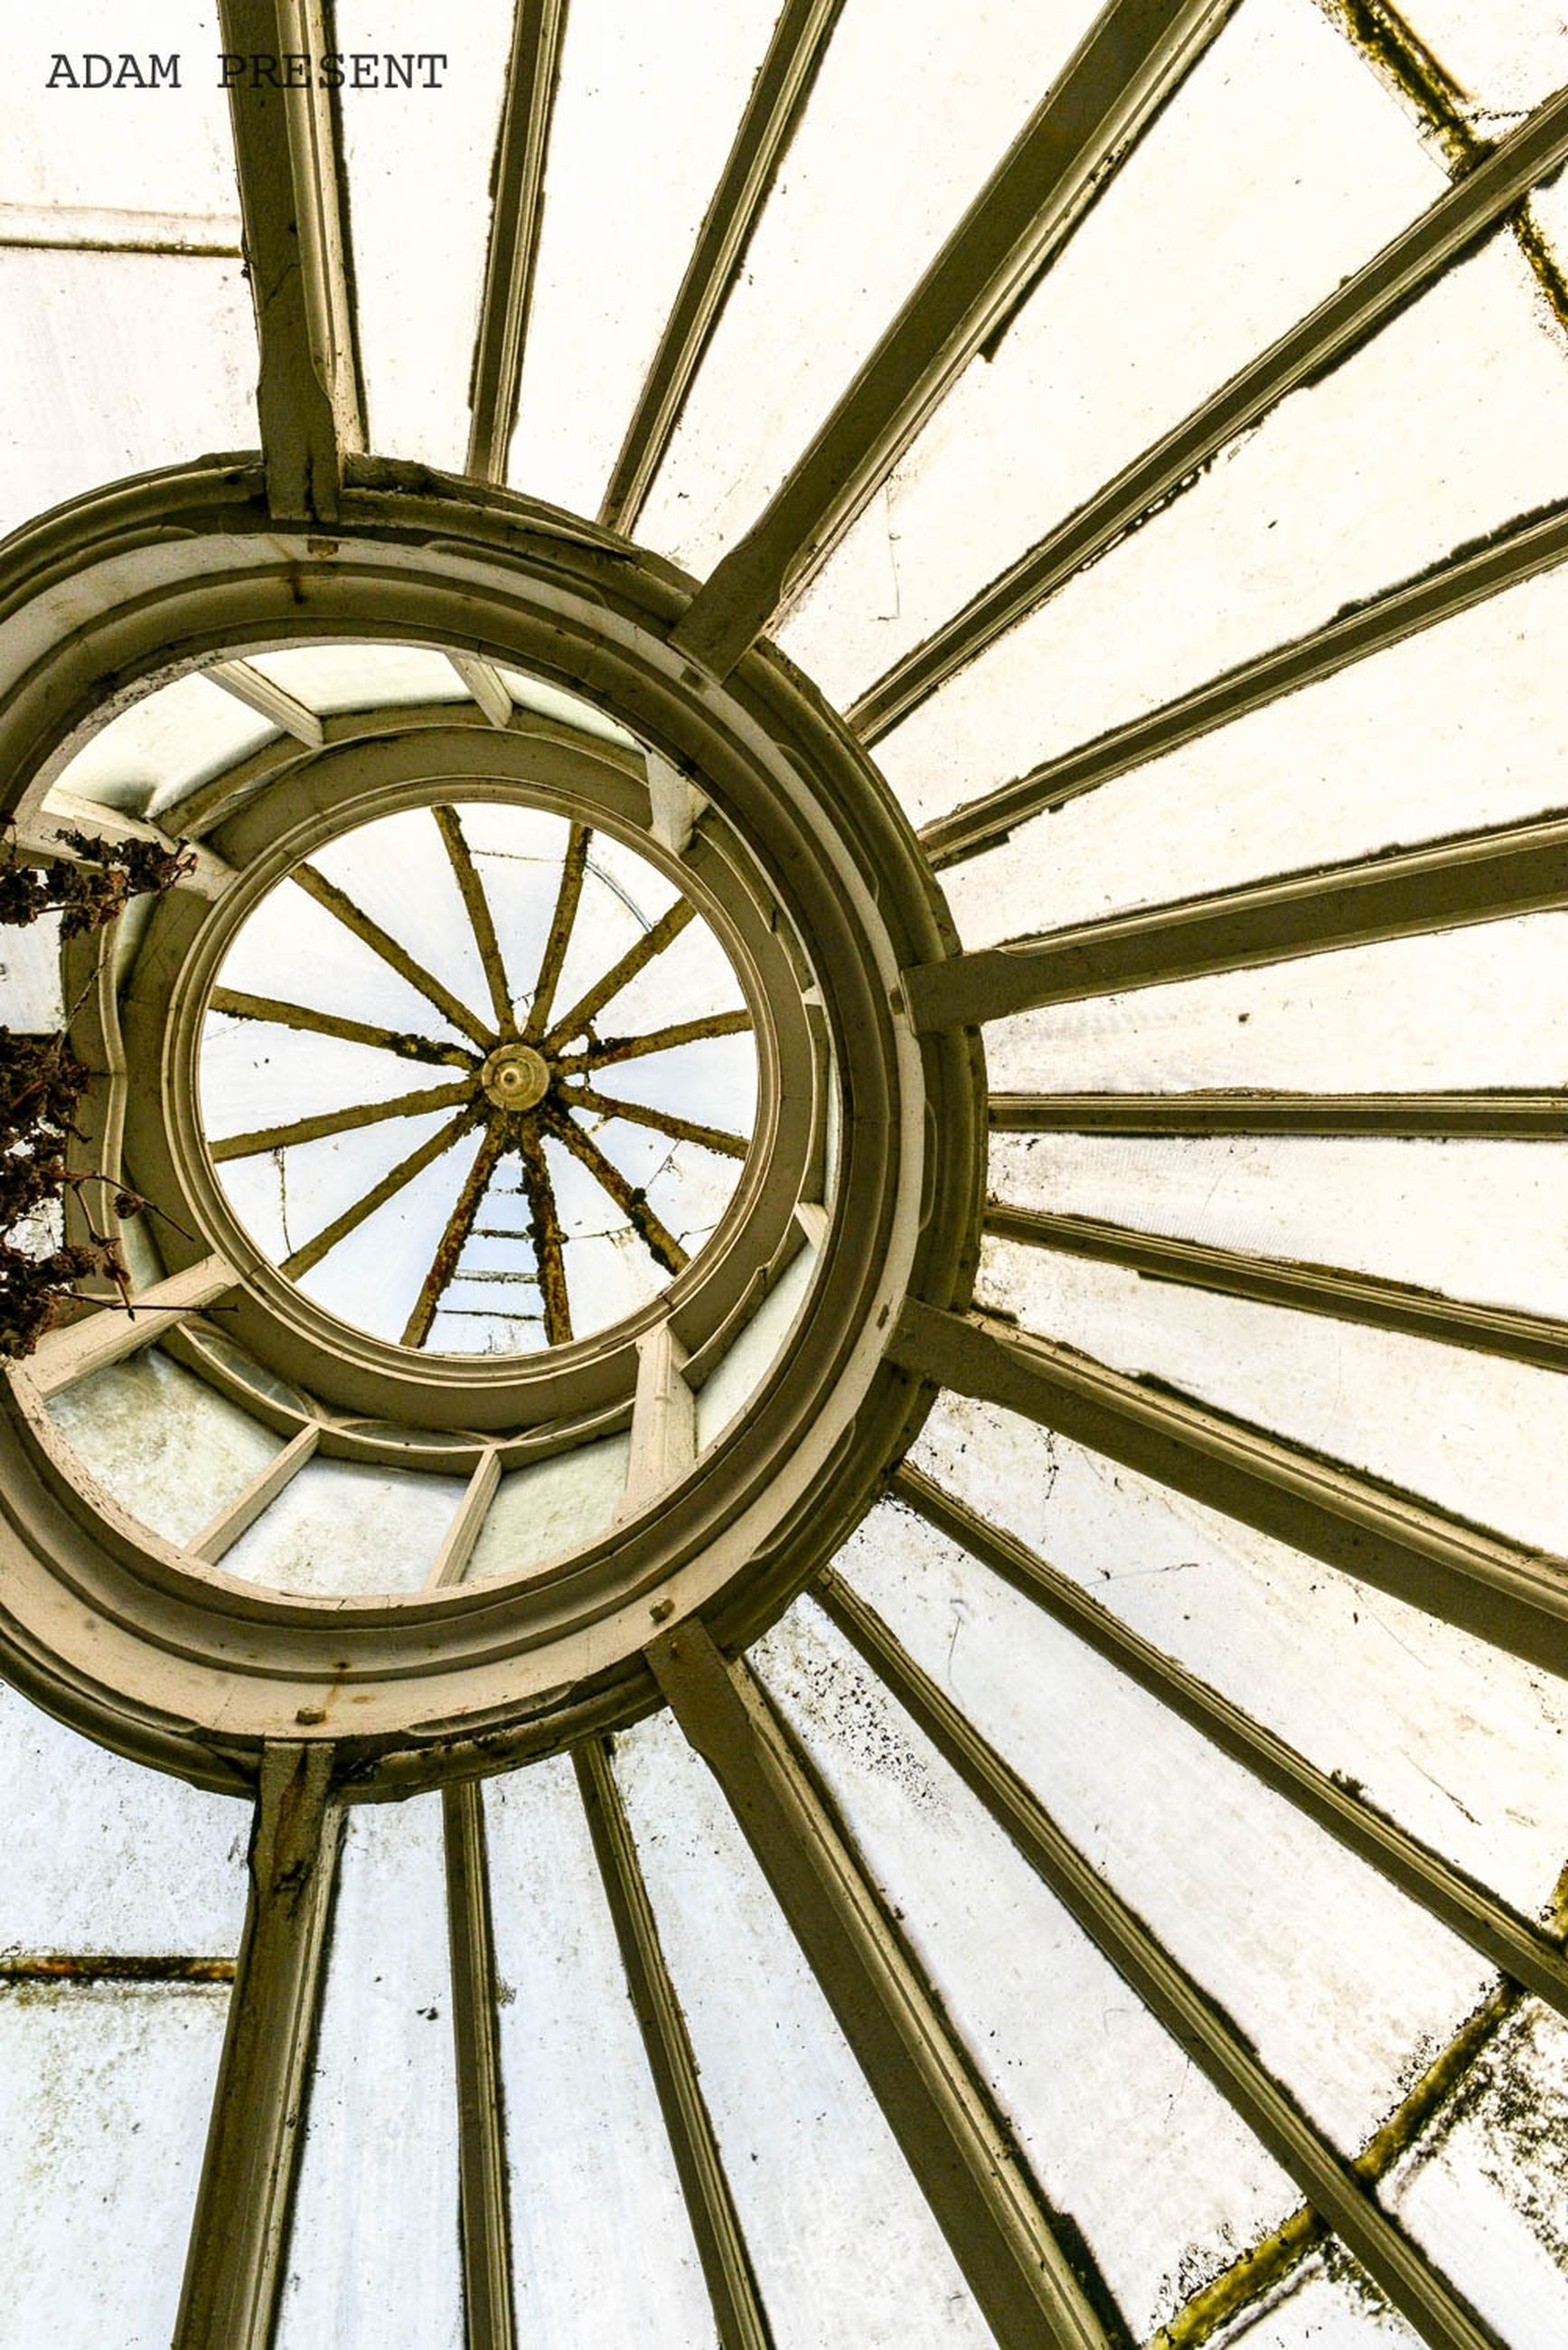 architecture, built structure, indoors, pattern, low angle view, design, directly below, ceiling, metal, geometric shape, architectural feature, spiral staircase, day, metallic, skylight, circle, no people, full frame, spiral, close-up